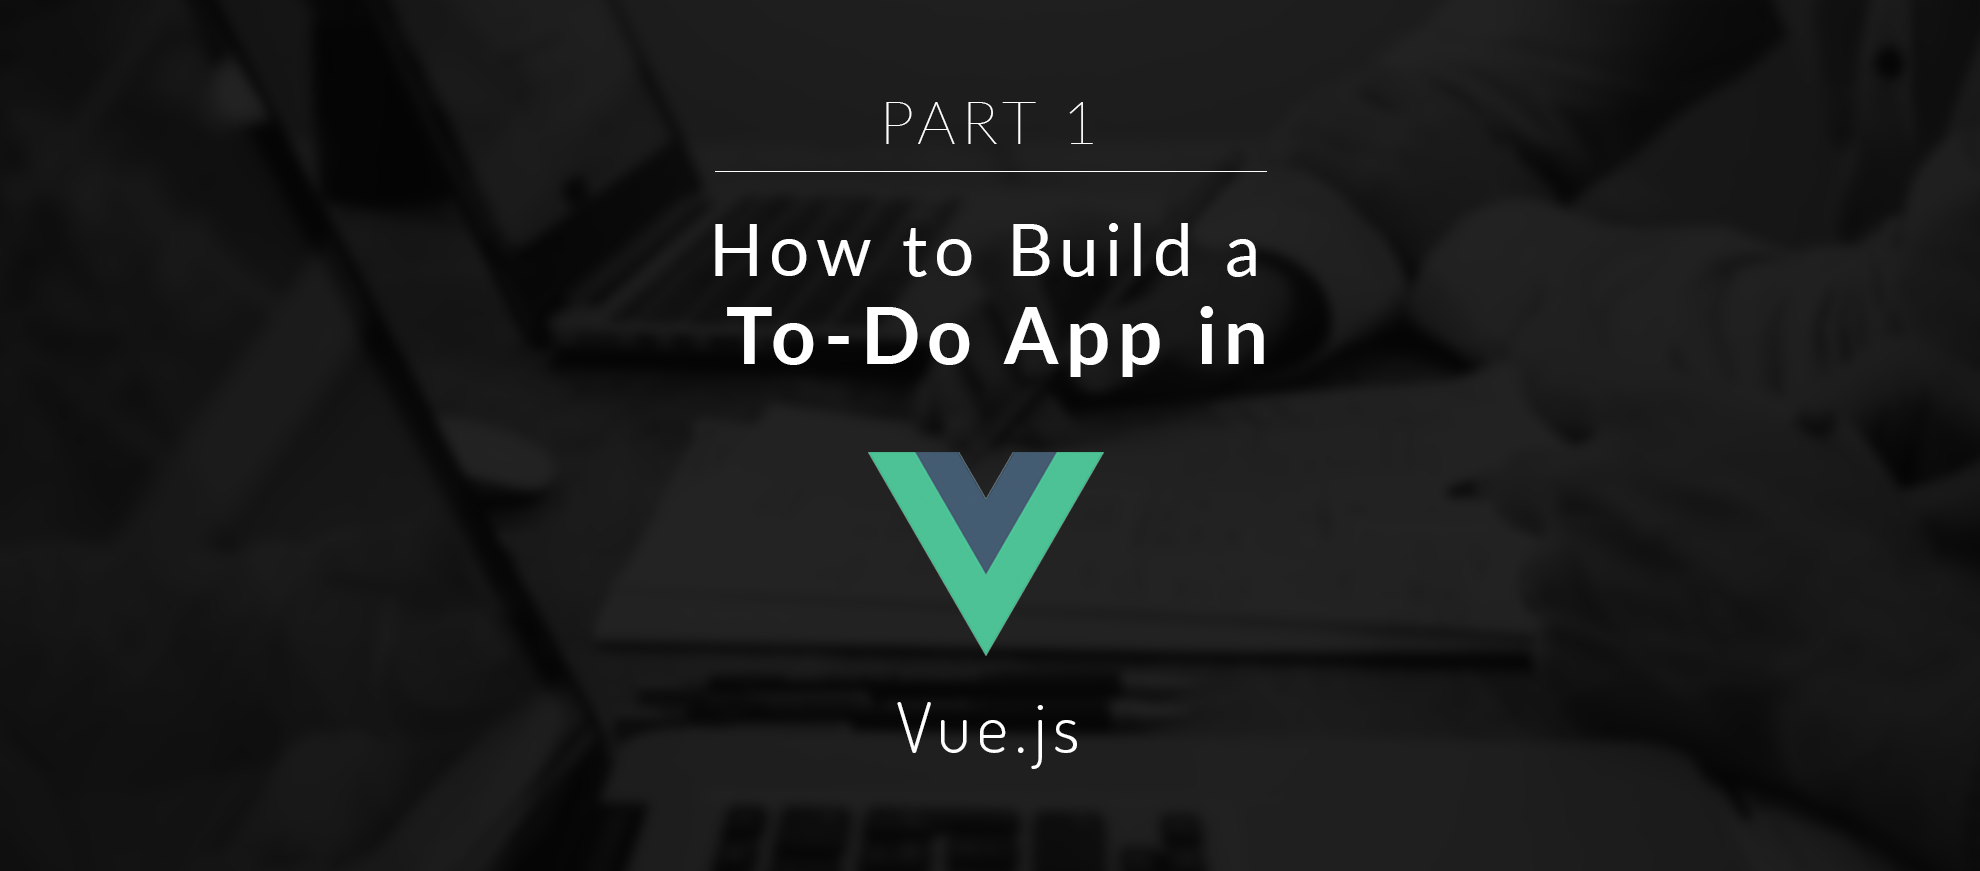 How to Build a To-Do App in Vue.js - Part 1